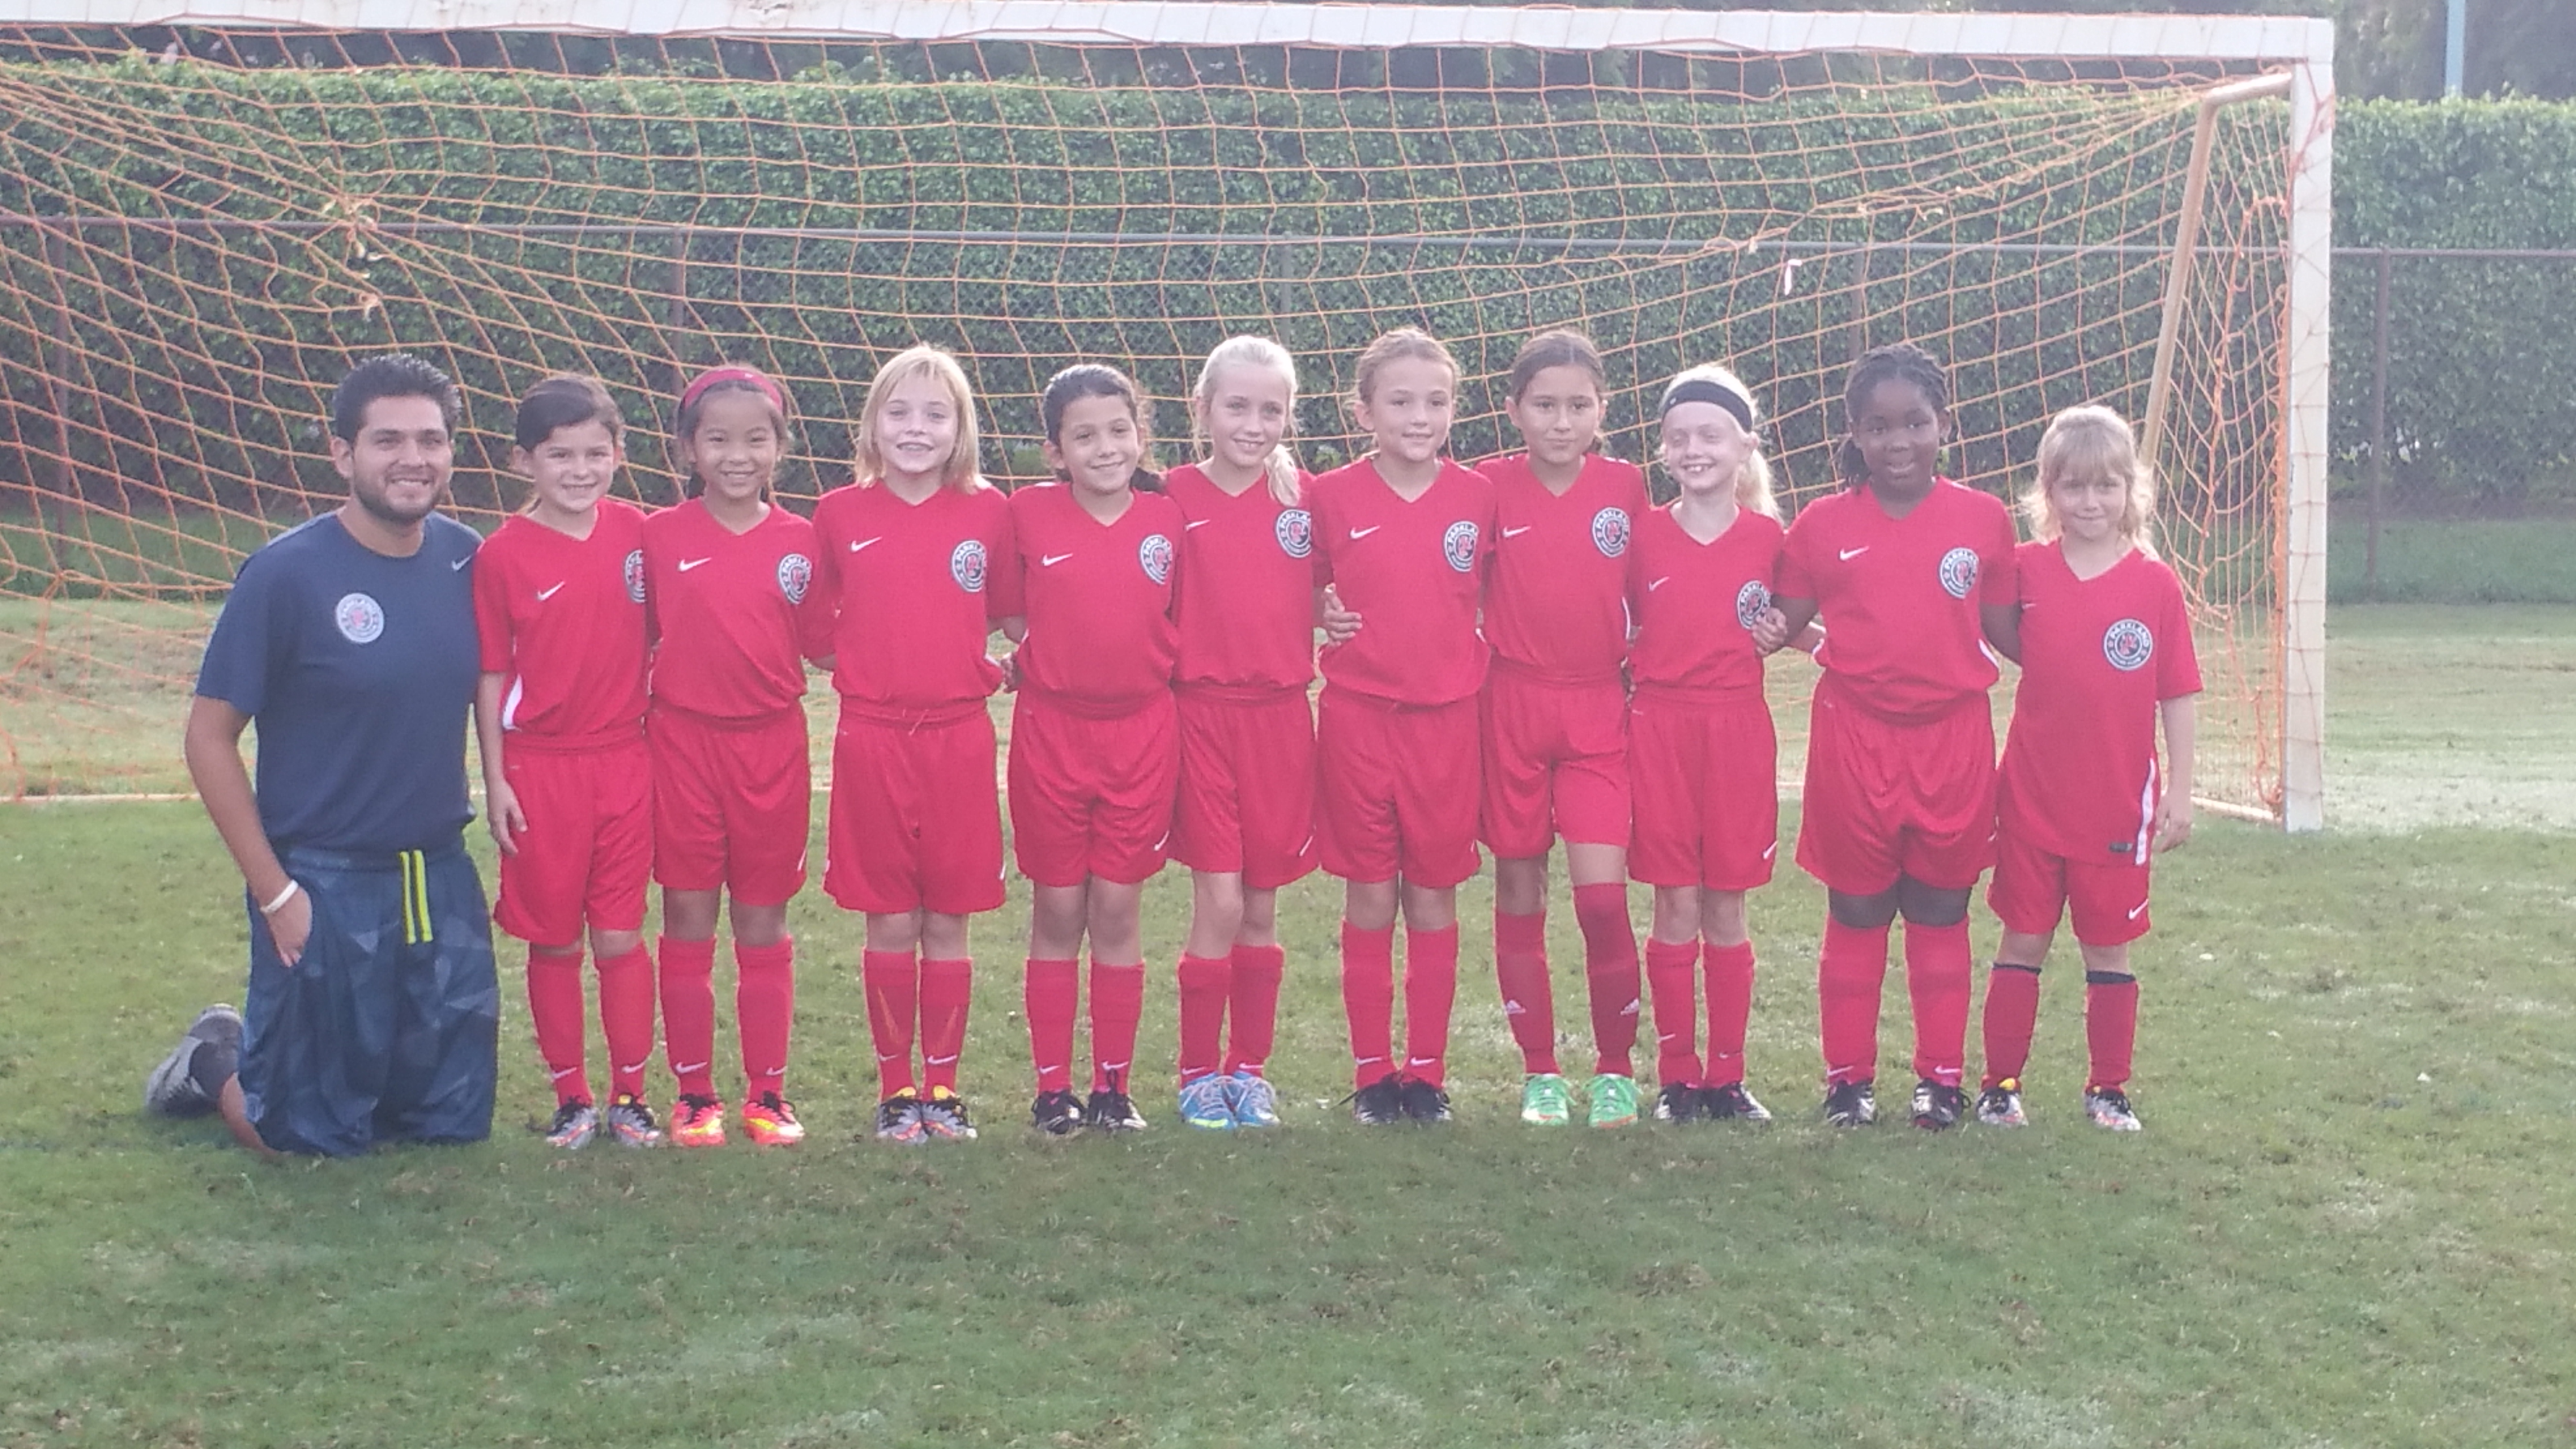 U9 Girls Weston Cup Finalists!